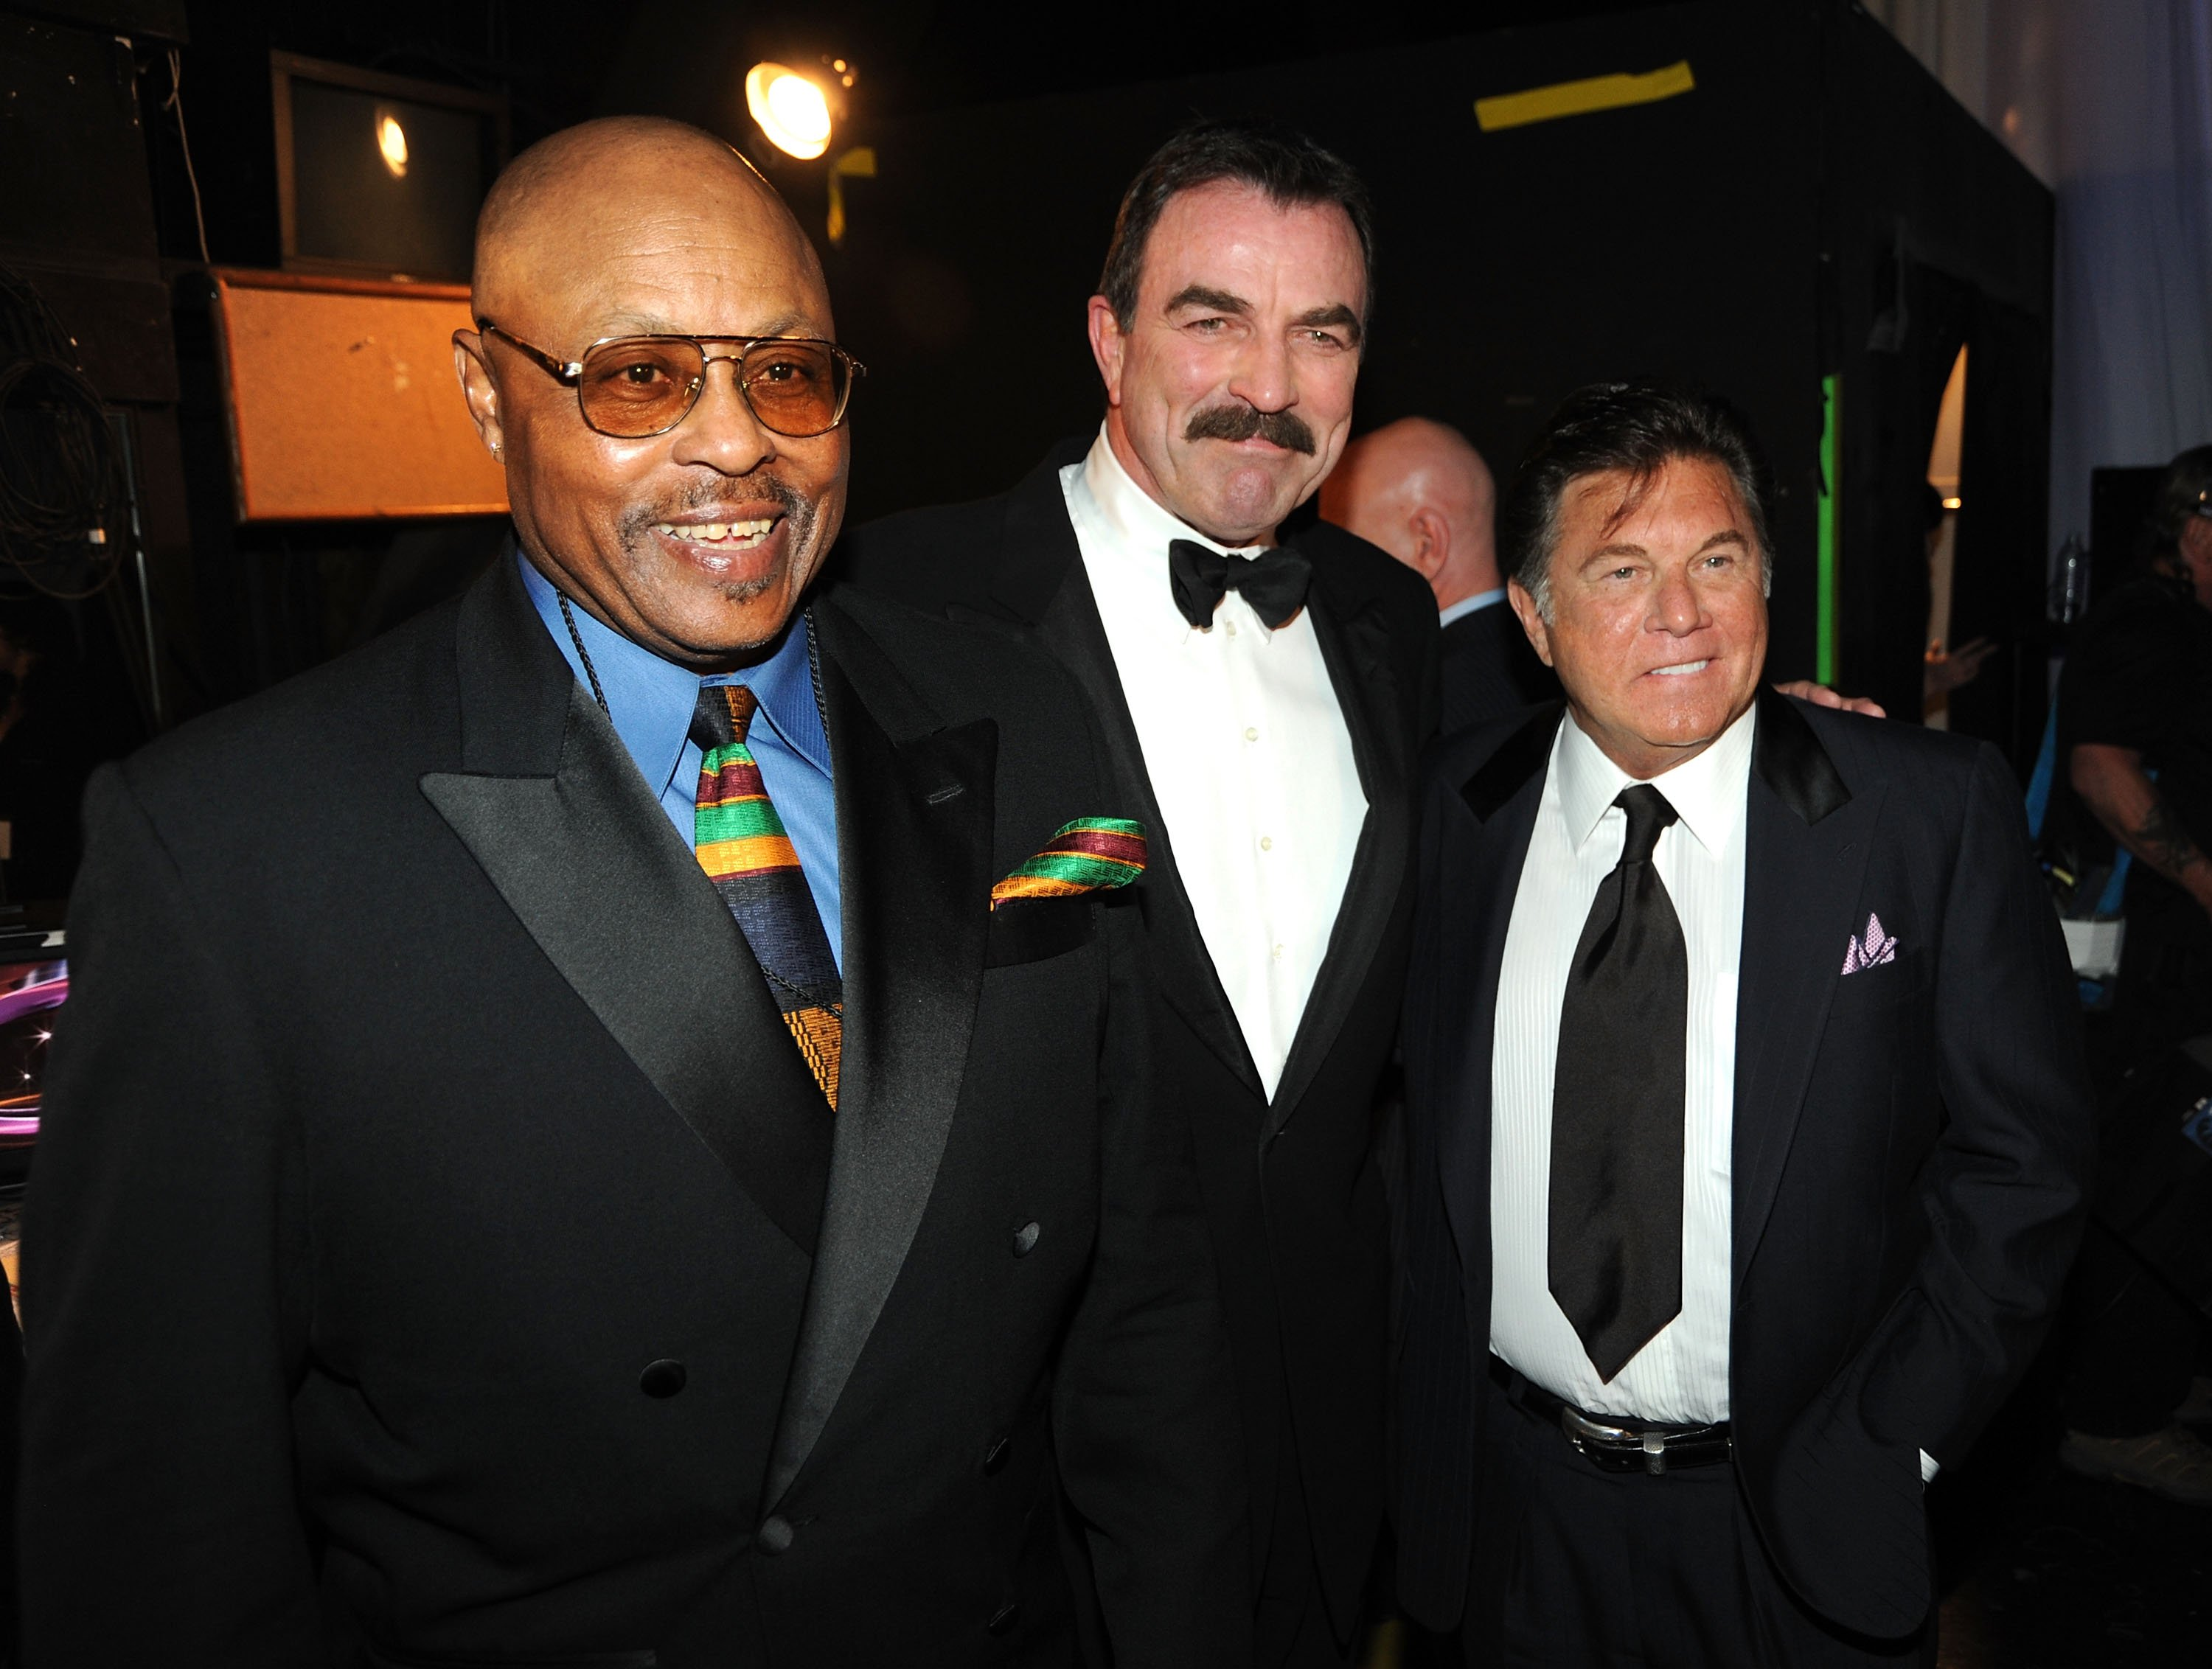 Roger E. Mosley, Tom Selleck, and Larry Manetti on April 19, 2009 in Universal City, California | Photo: Getty Images/Global Images Ukraine